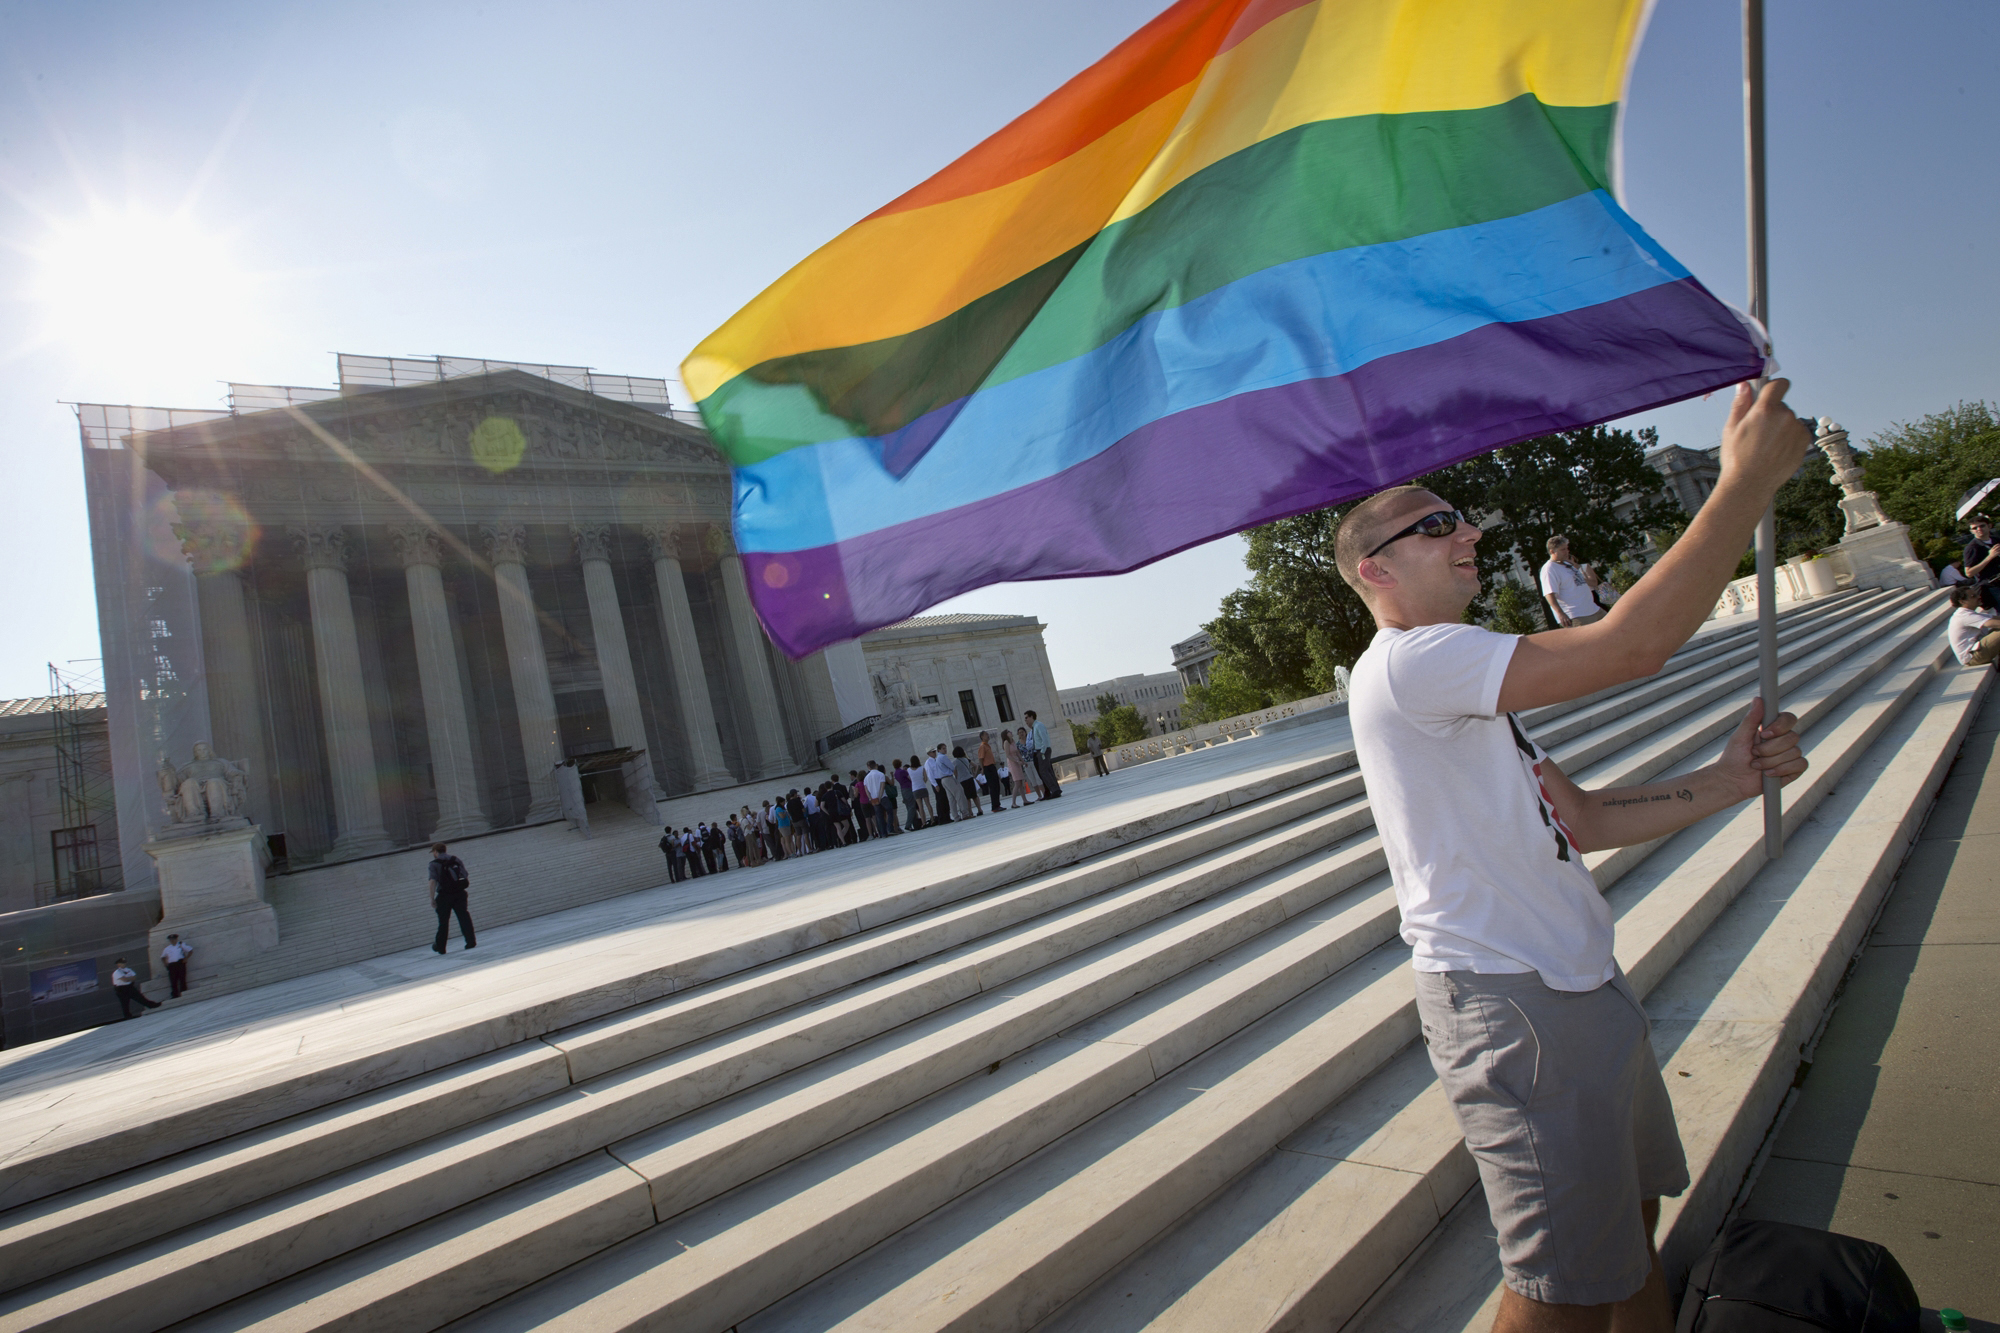 Supreme Court gay marriage case highlights sharp partisan divide among top officials | Fox News